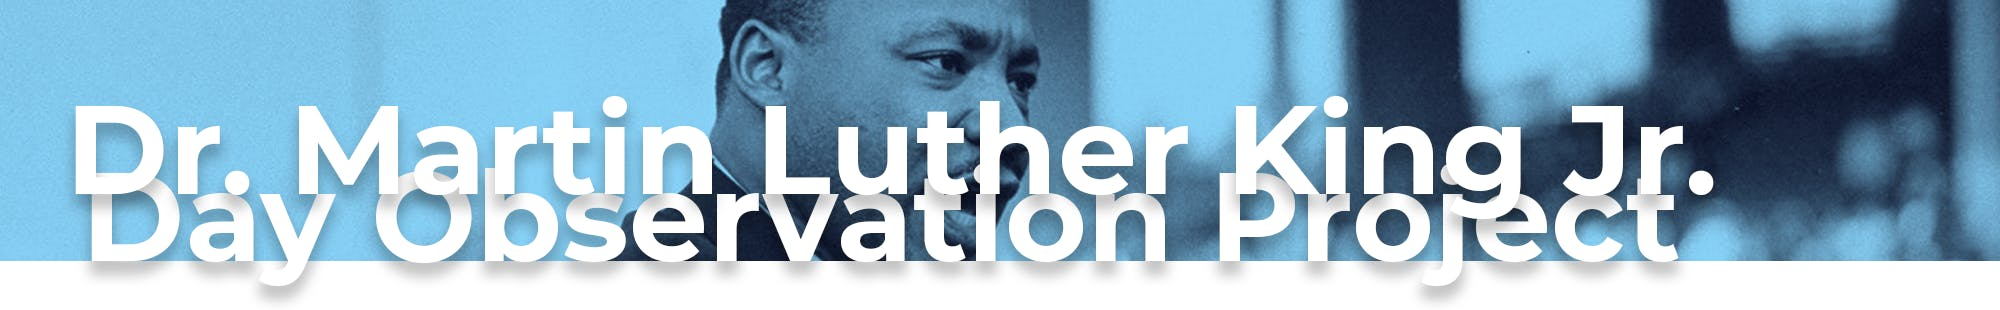 Dr. Martin Luther King Day Observation Ideas banner image